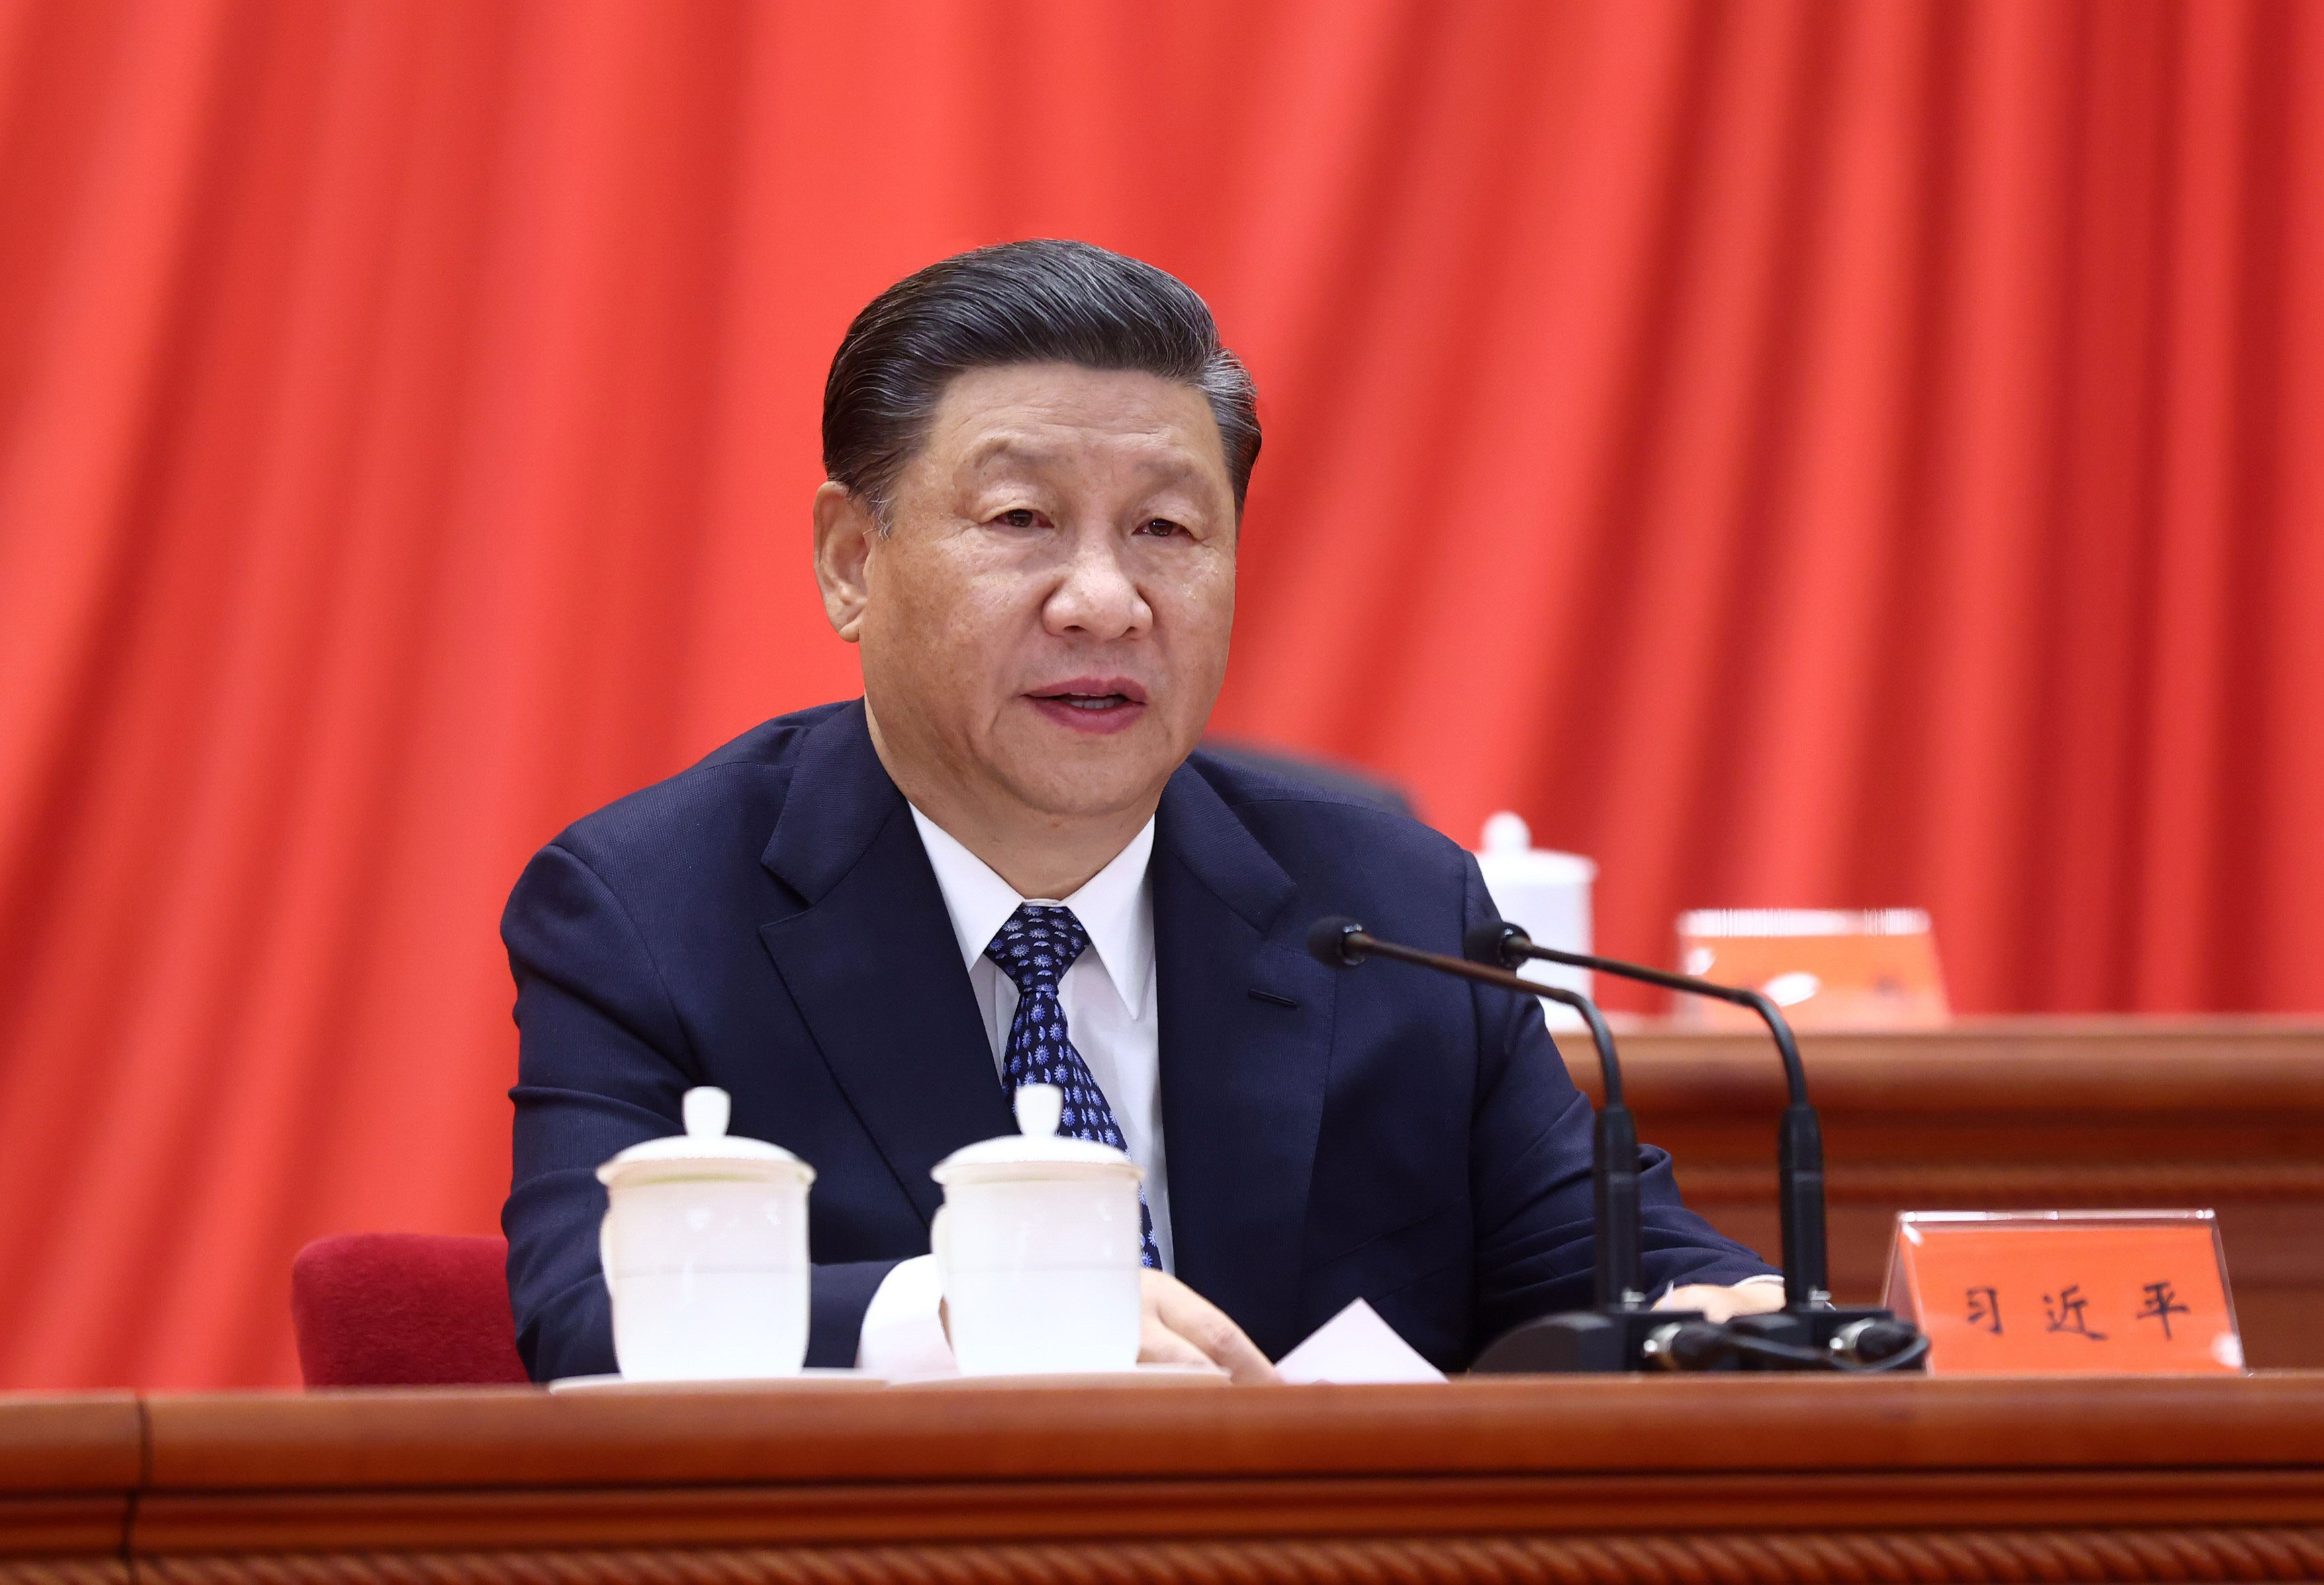 Chinese President Xi Jinping speaks at a meeting in Beijing on May 28.